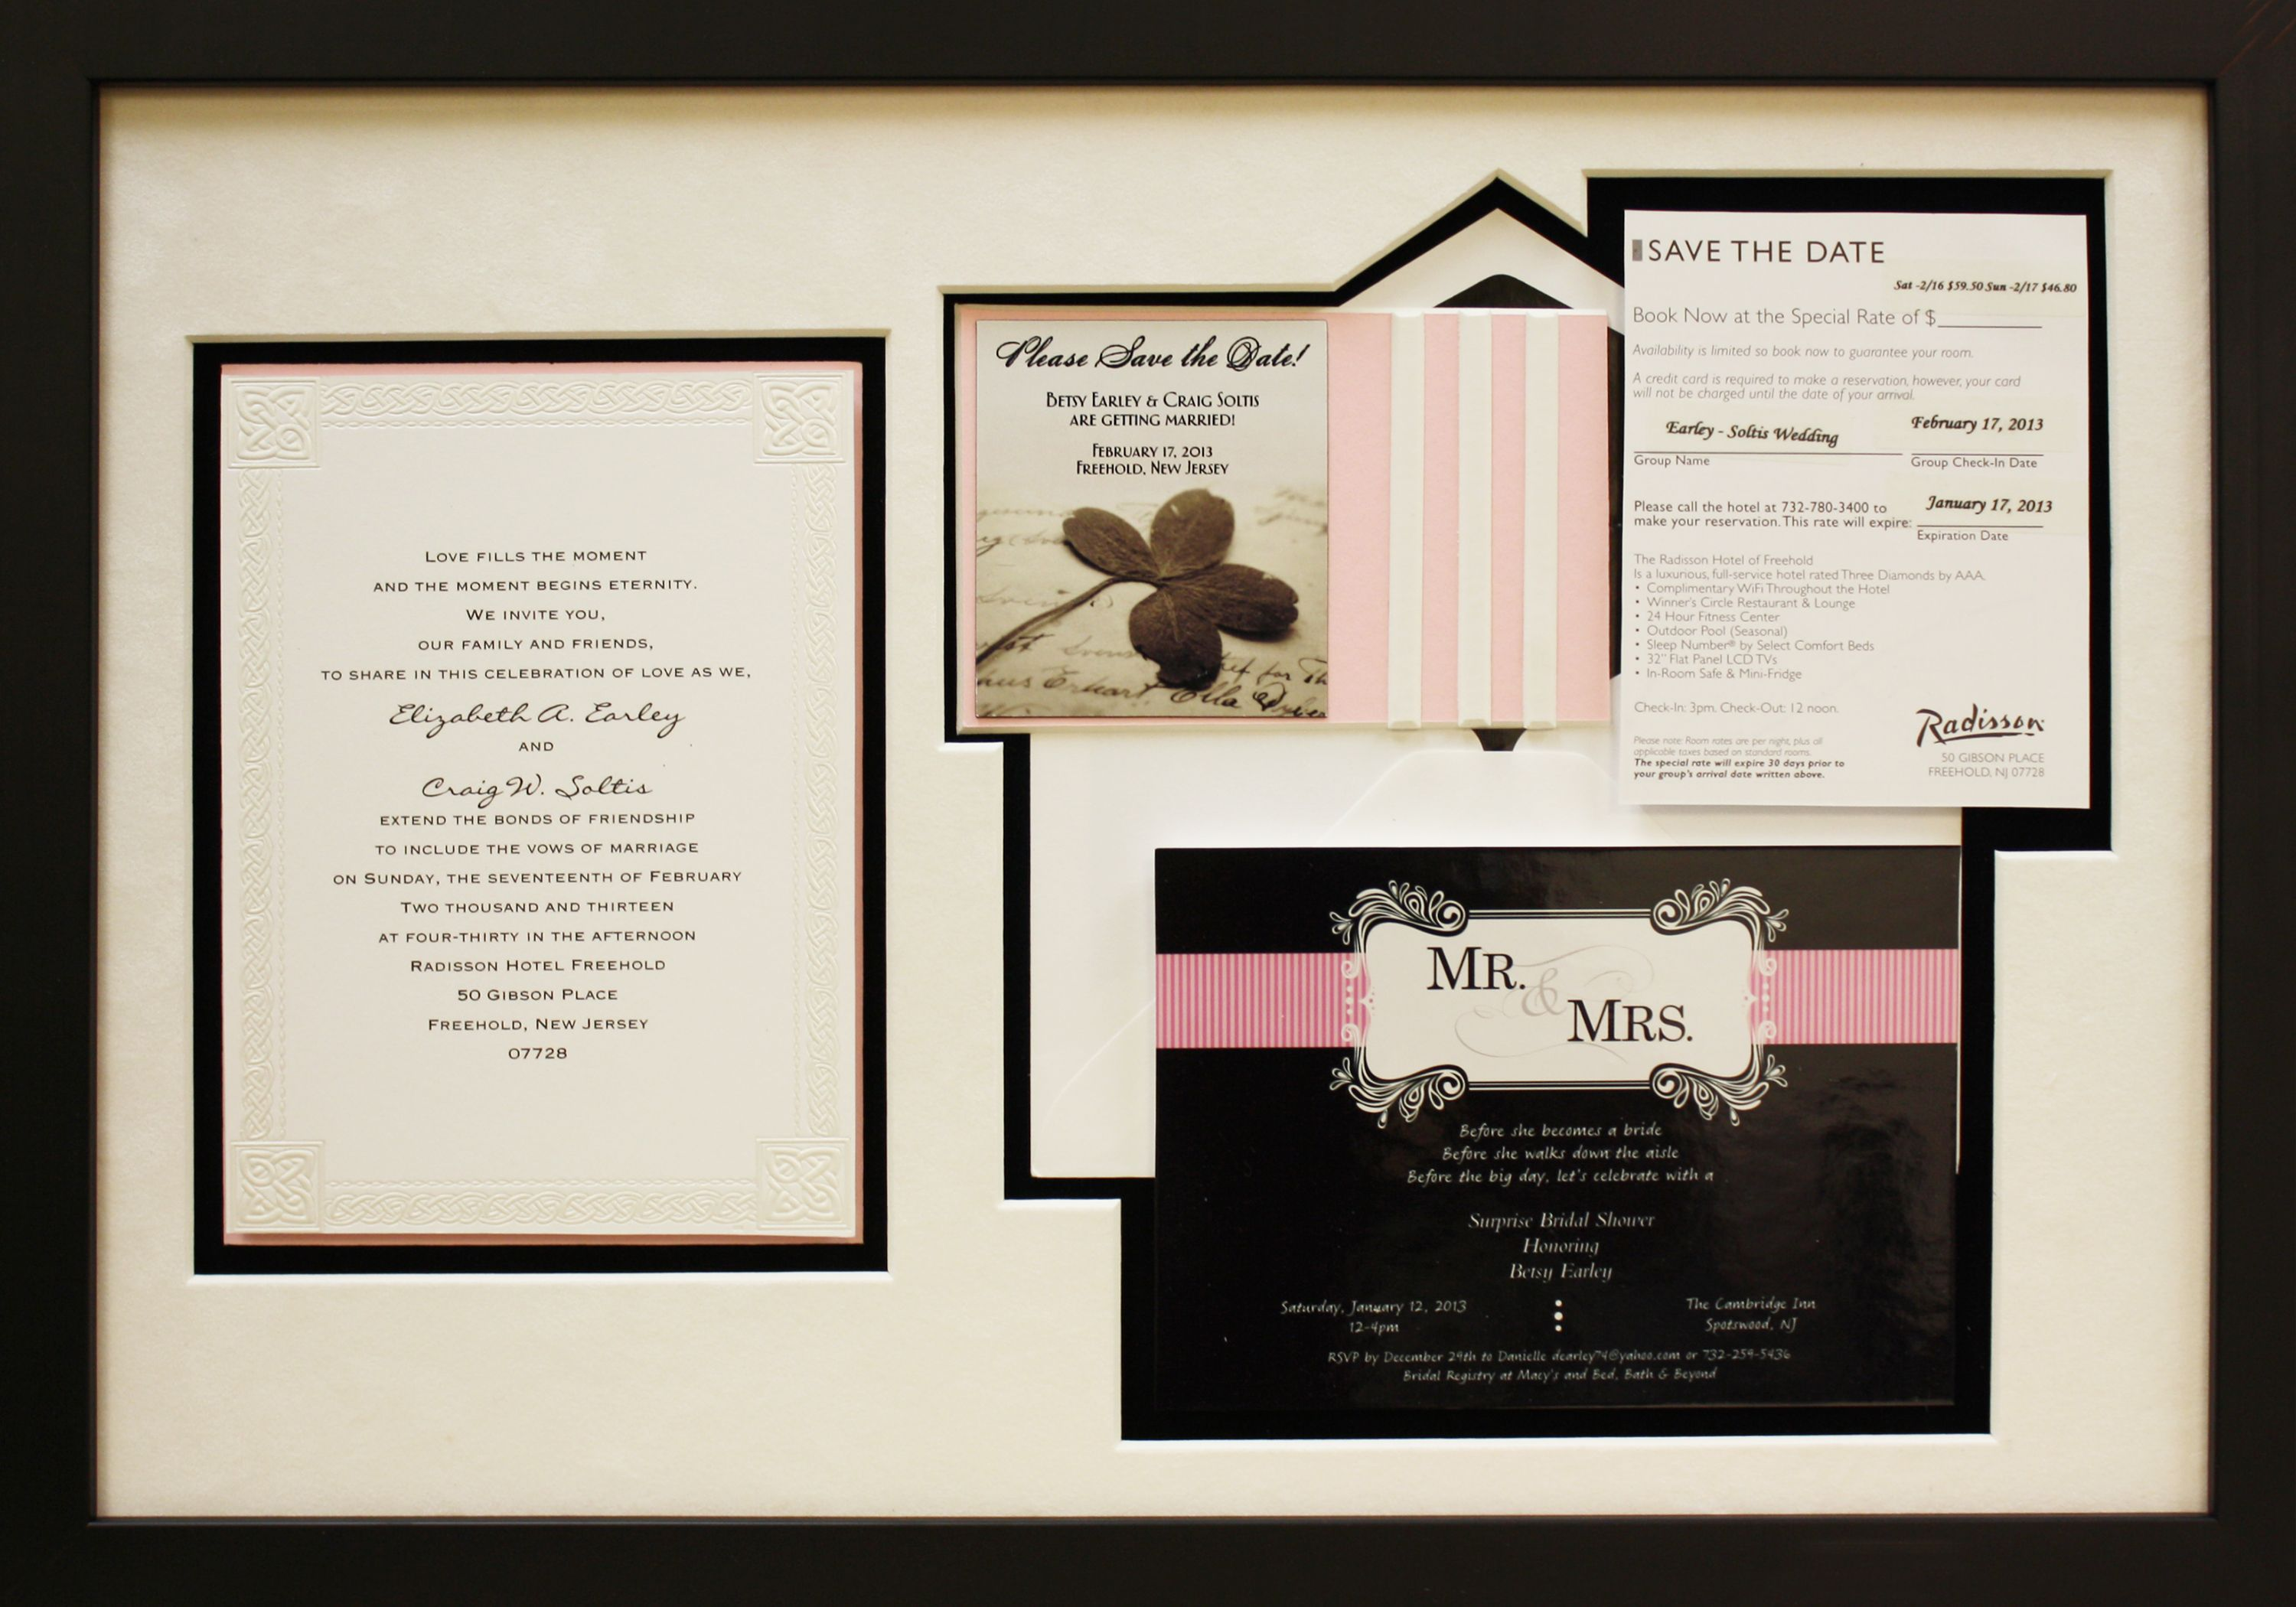 Wedding Invitation Frames: Wedding Invitation Framed With A Custom Mat Board To